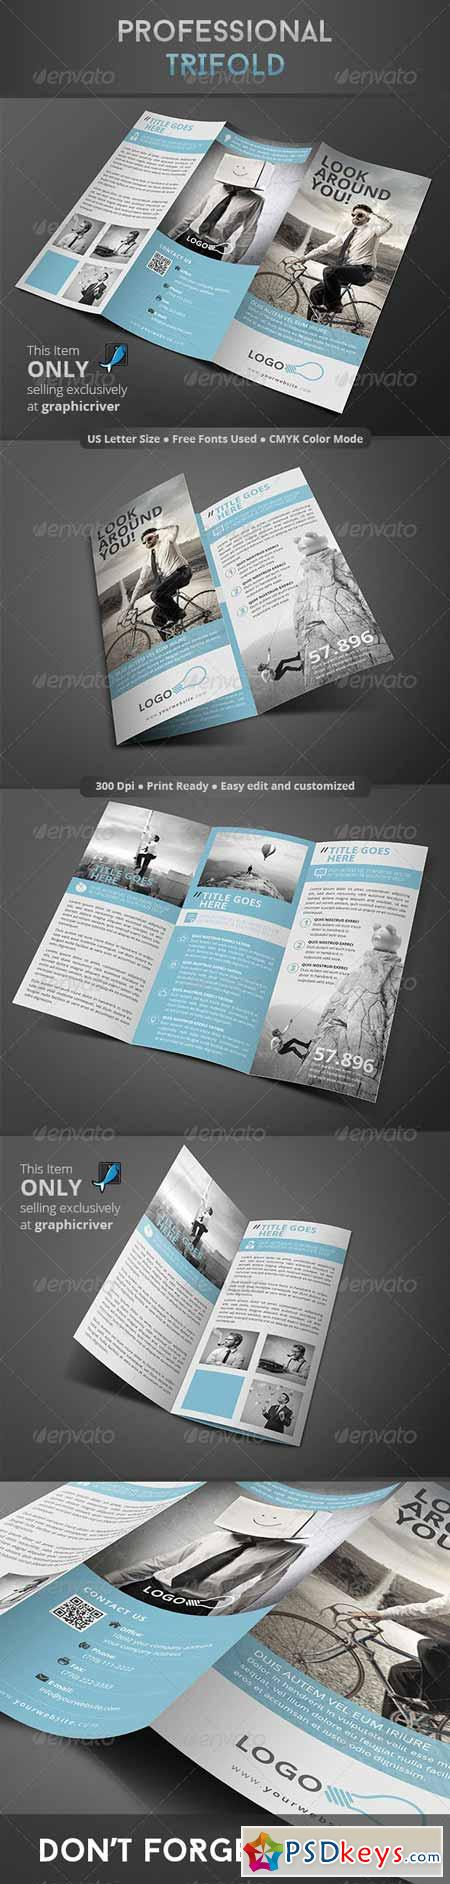 Professional Trifold 8319378